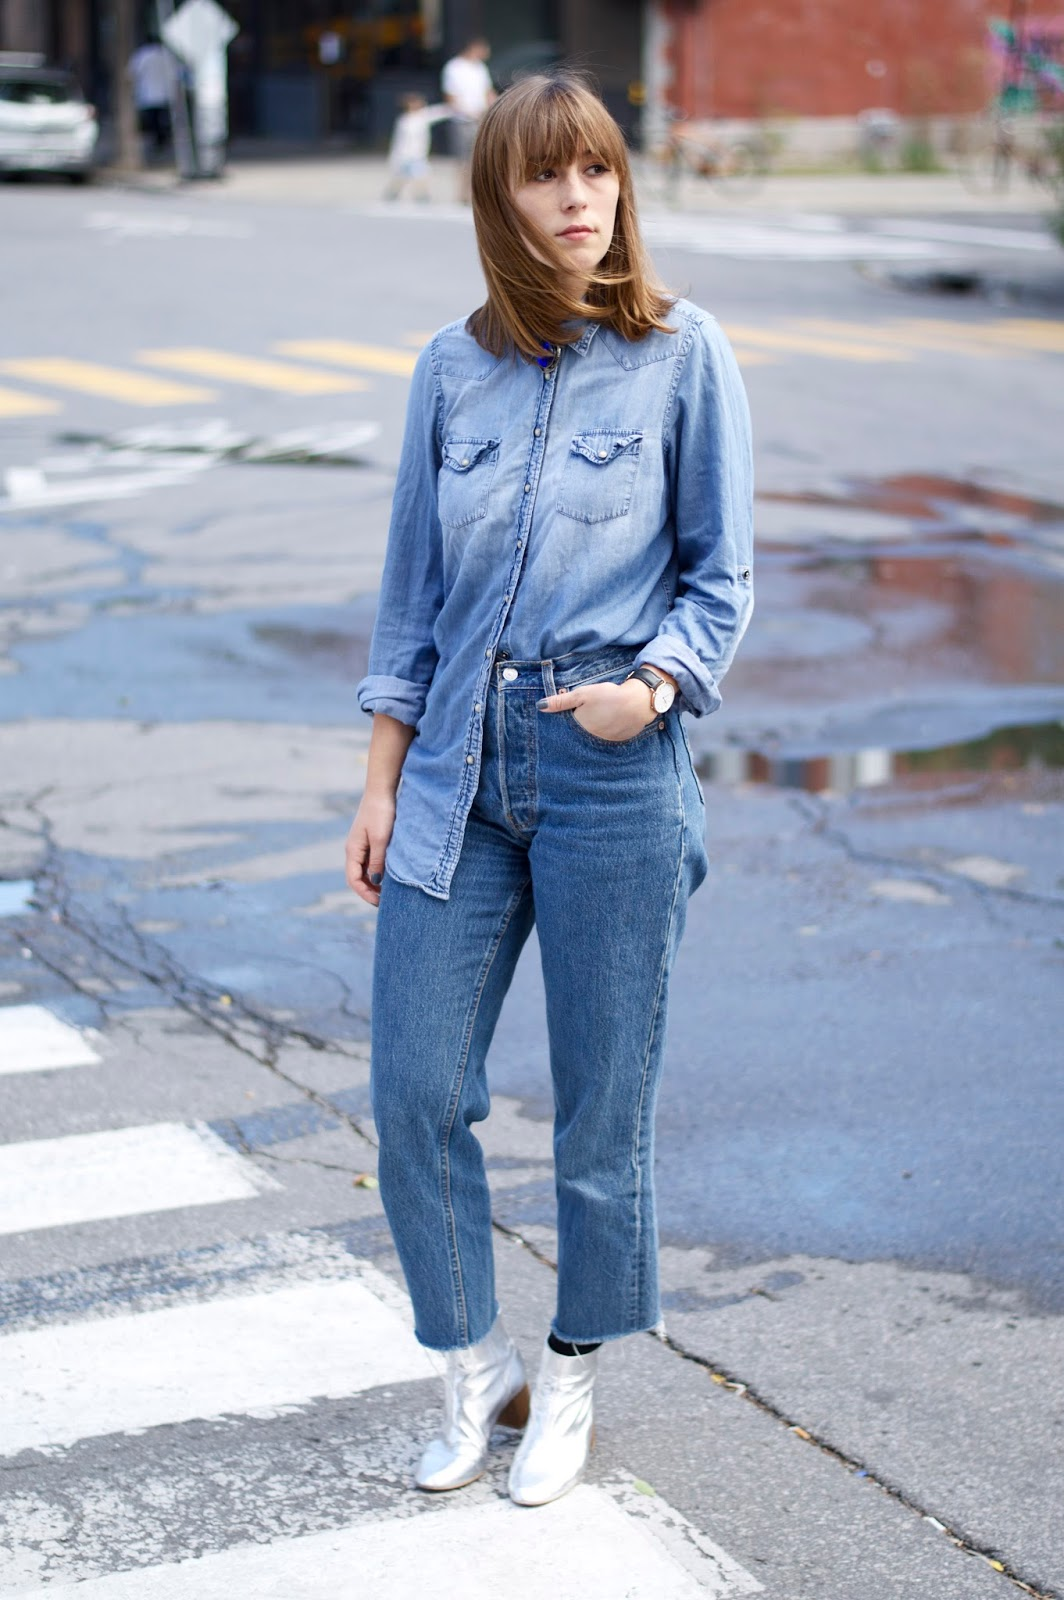 Double denim for AW16 trends